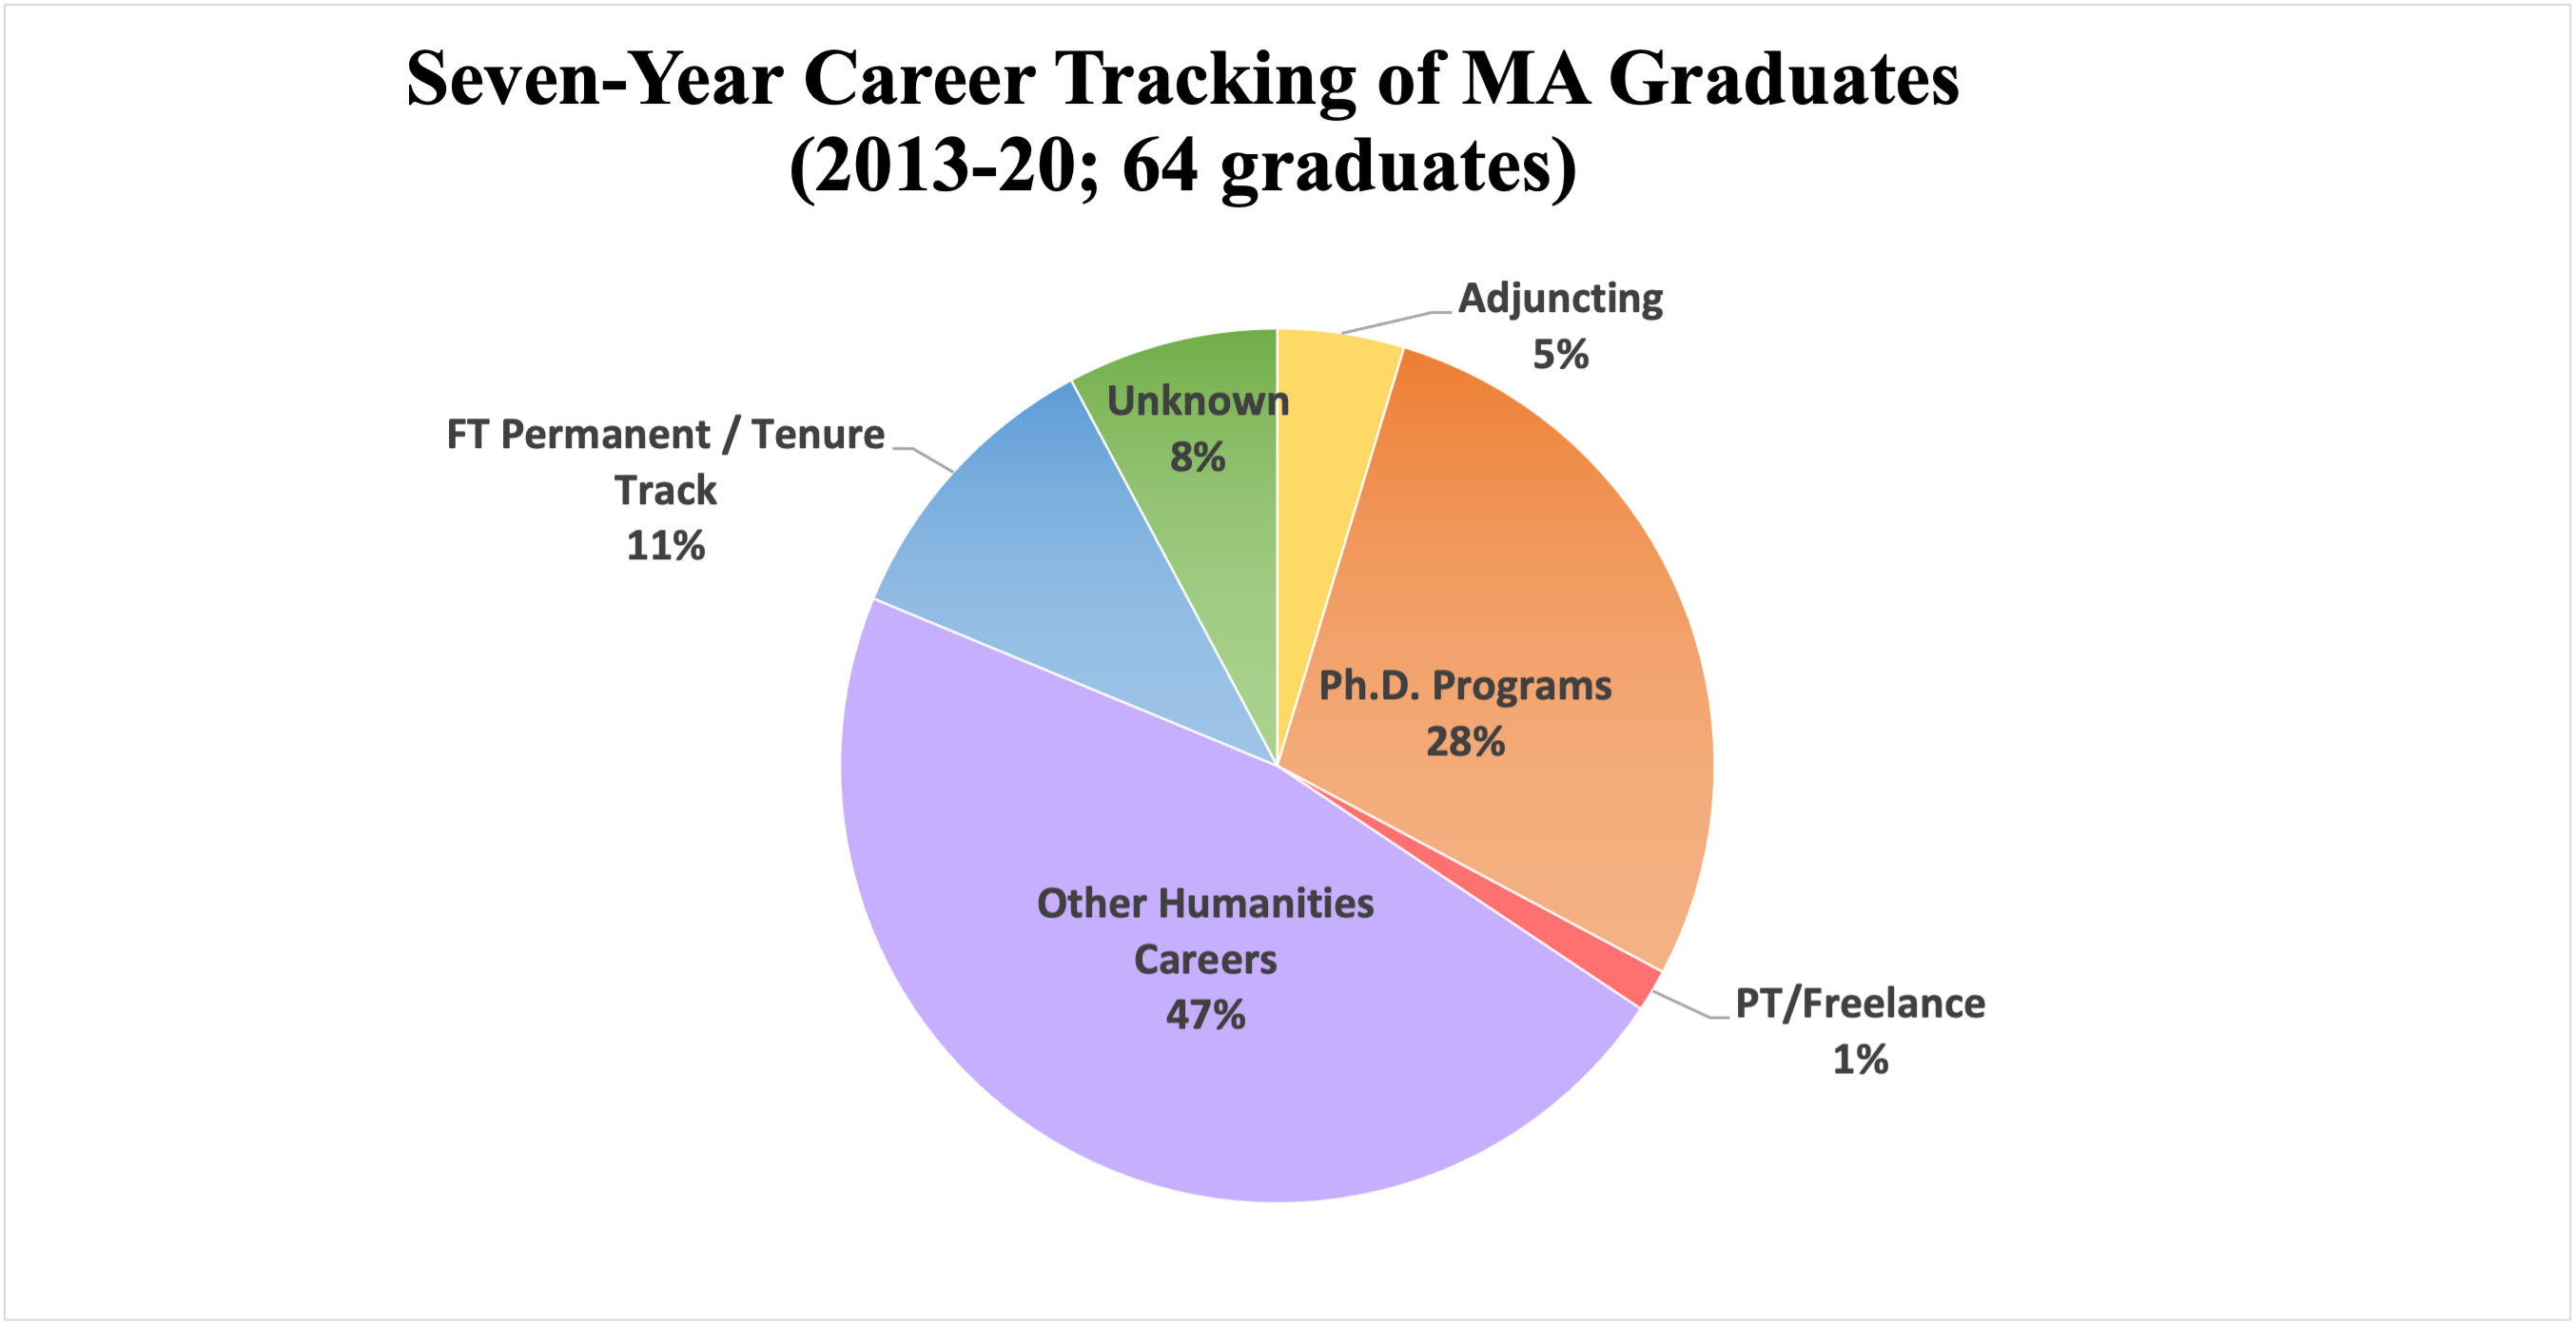 Pie chart showing 5-year (2013-2018) career tracking of 56 MA graduates: 32% PhD programs, 28% other humanities careers, 20% unknown/looking, 11% FT permanent, 5% adjuncting, 2% part-time/freelance, 2% tenure track